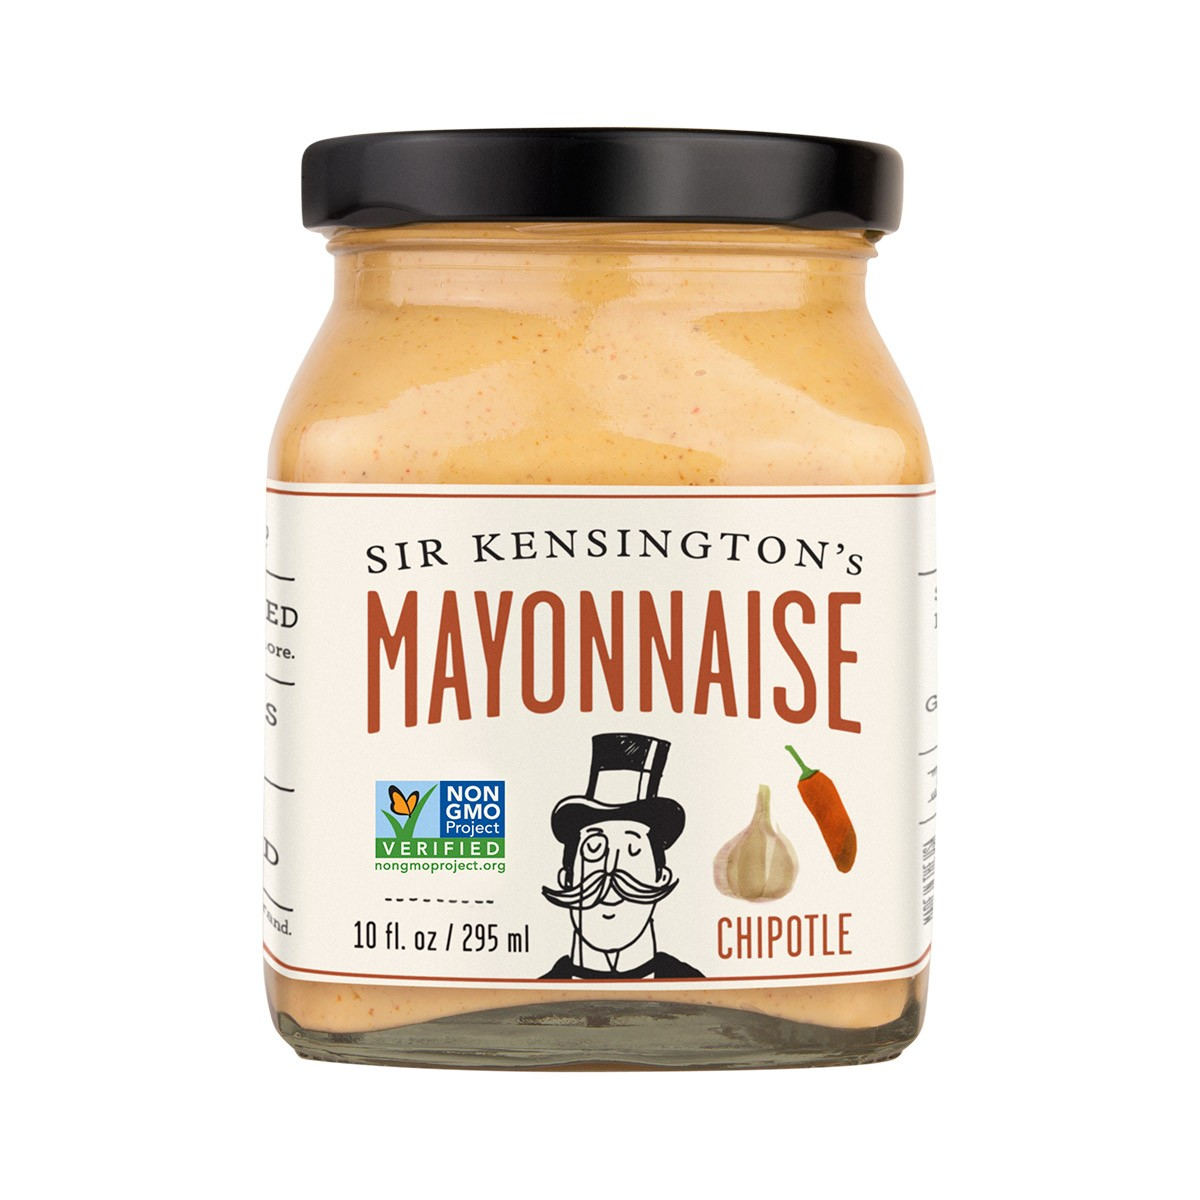 chipotle mayonnaise mayonnaise whole egg mayonnaise bacon mayonnaise ...